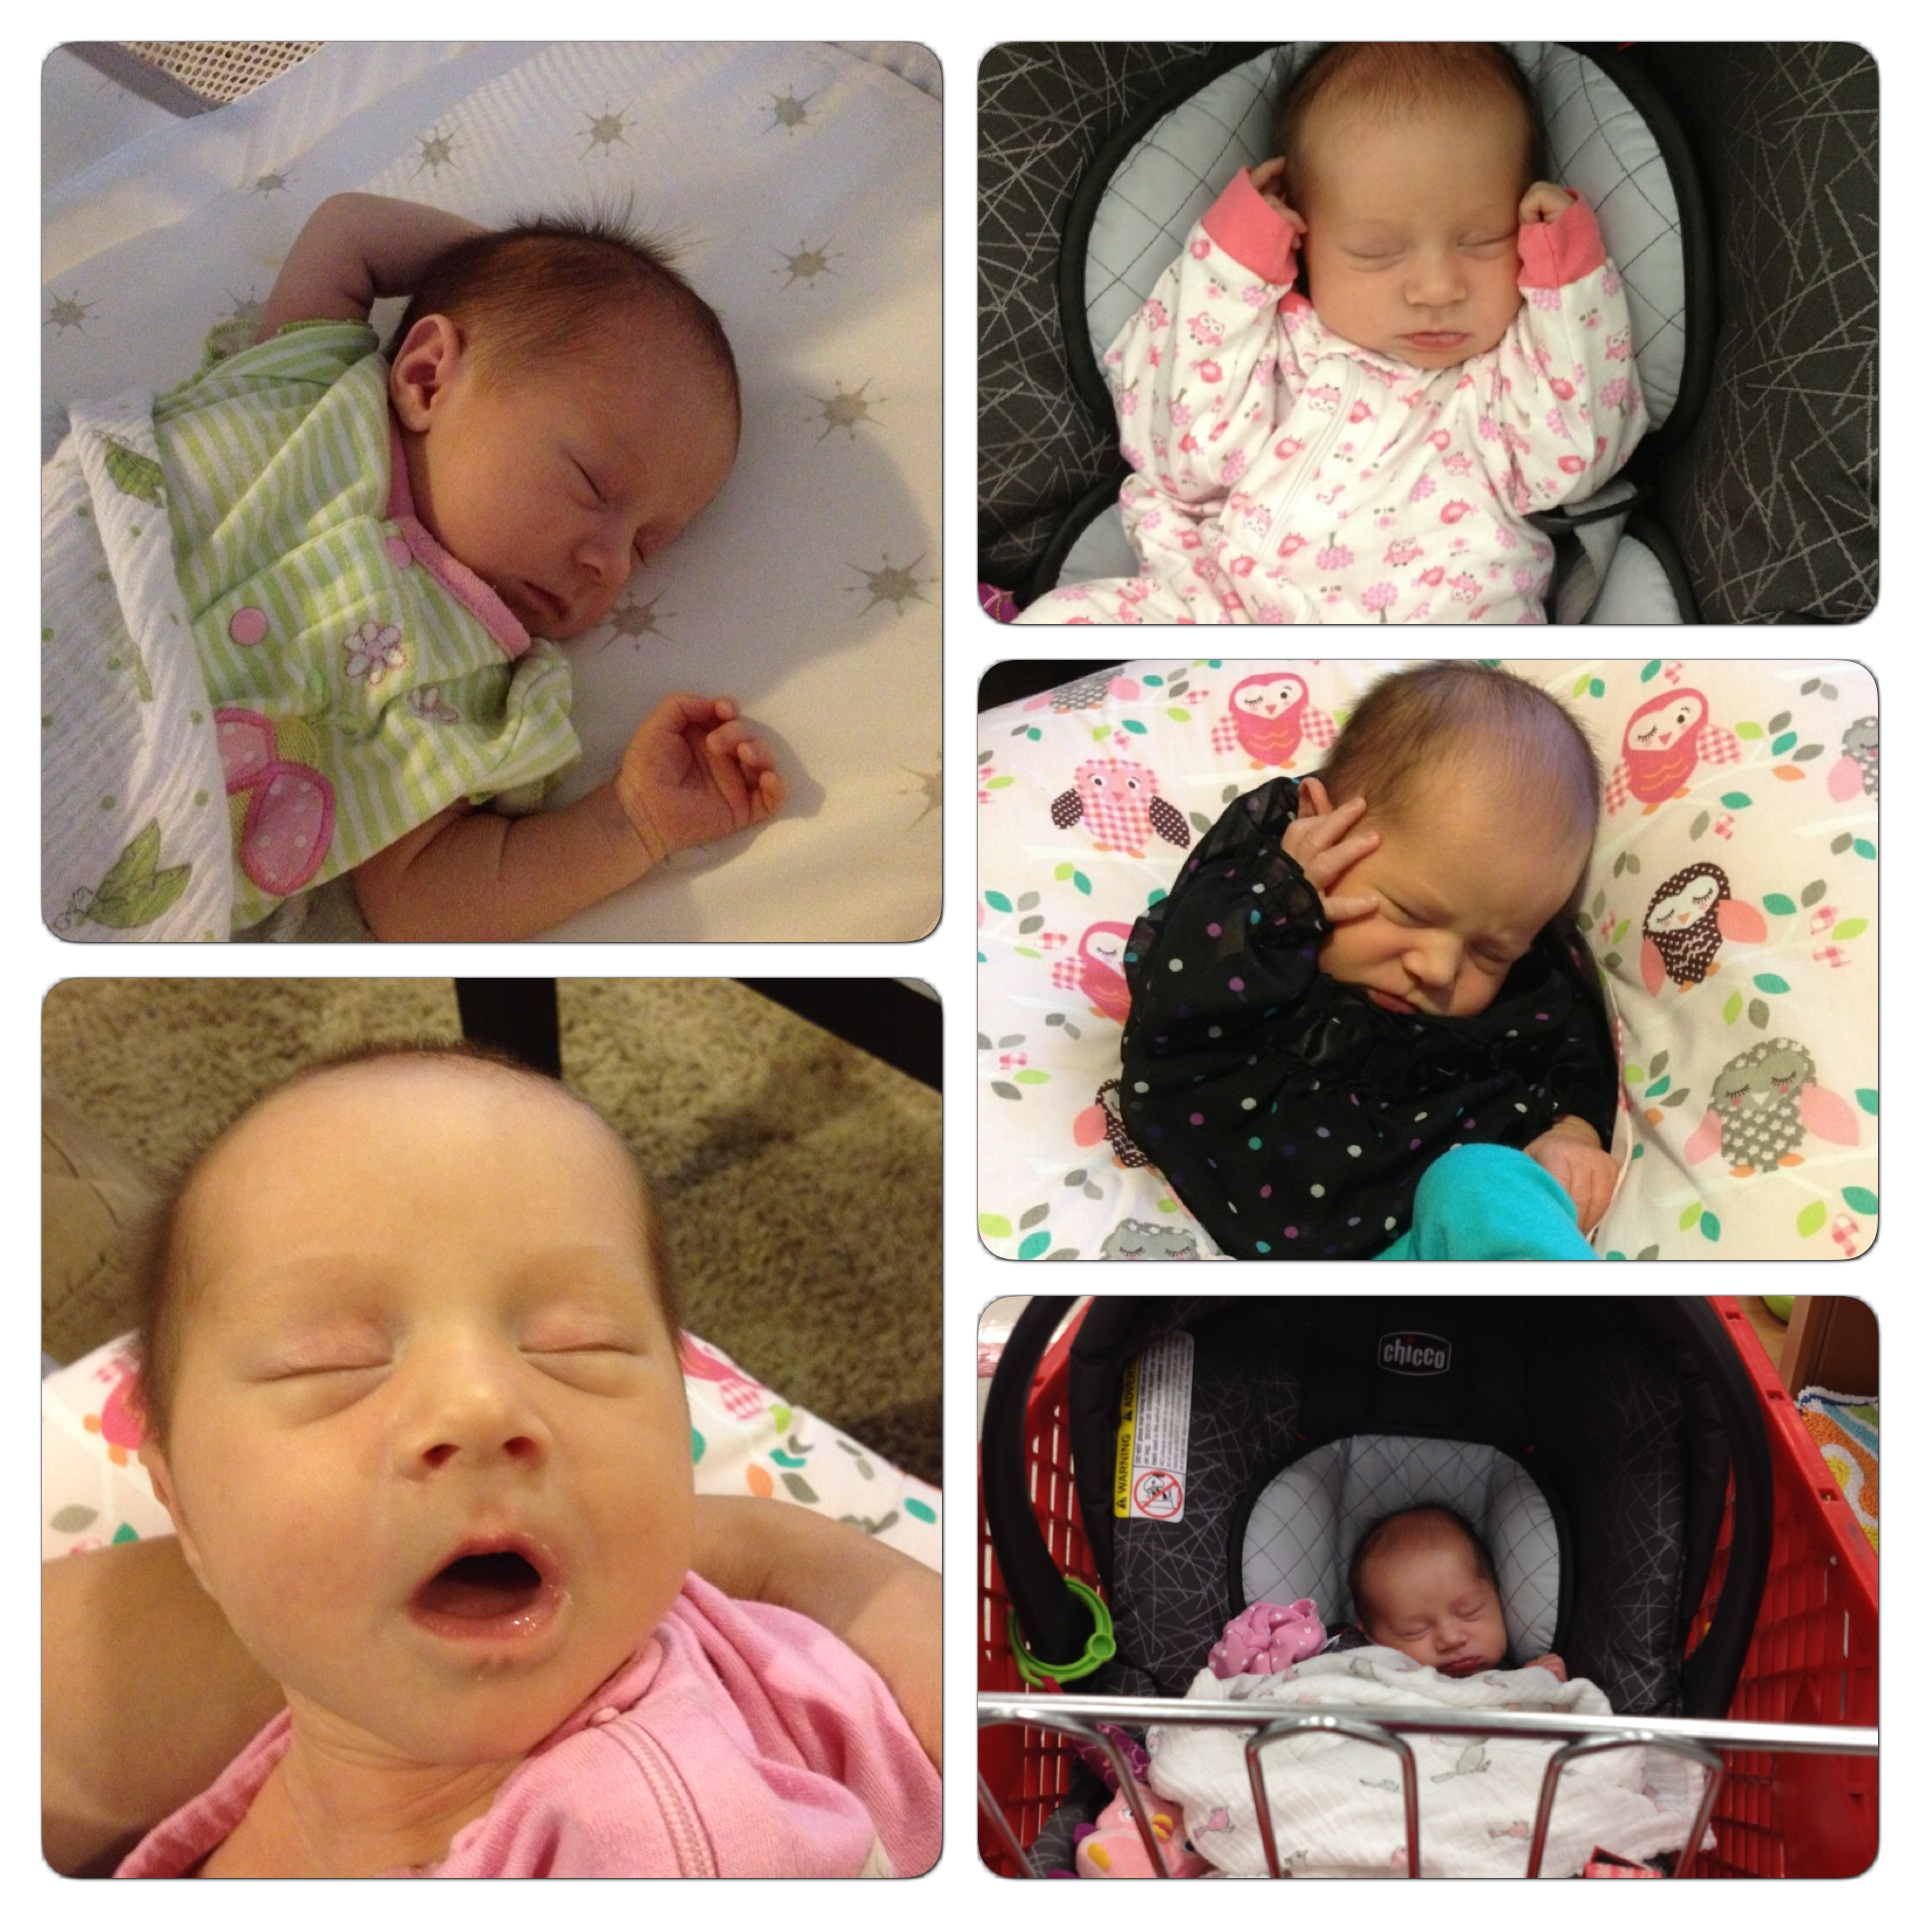 Here are some of the latest shots of Mikayla.